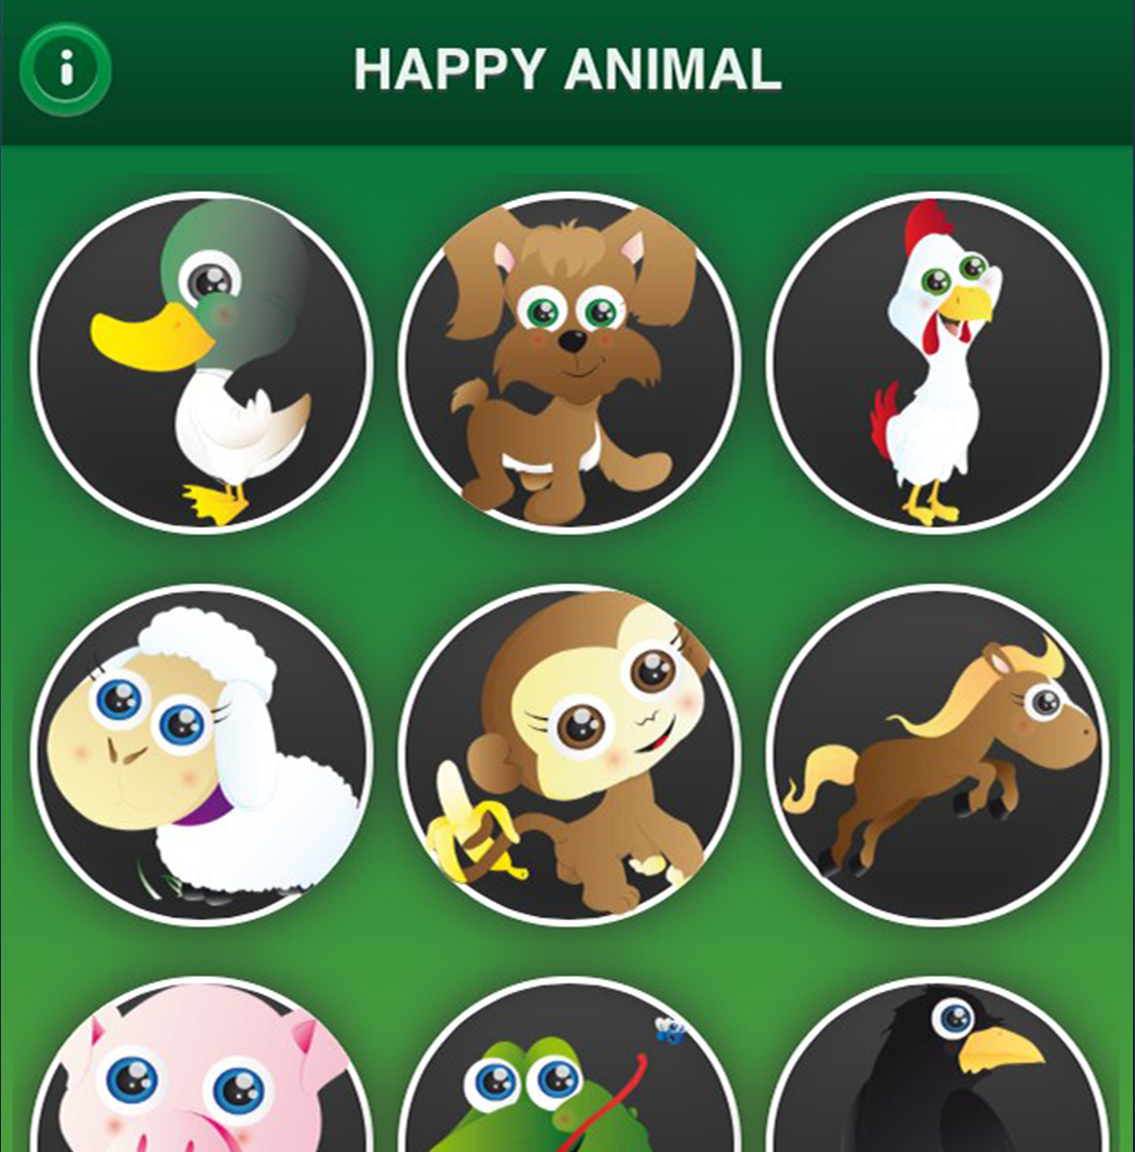 anteprima-slide_happy_animal